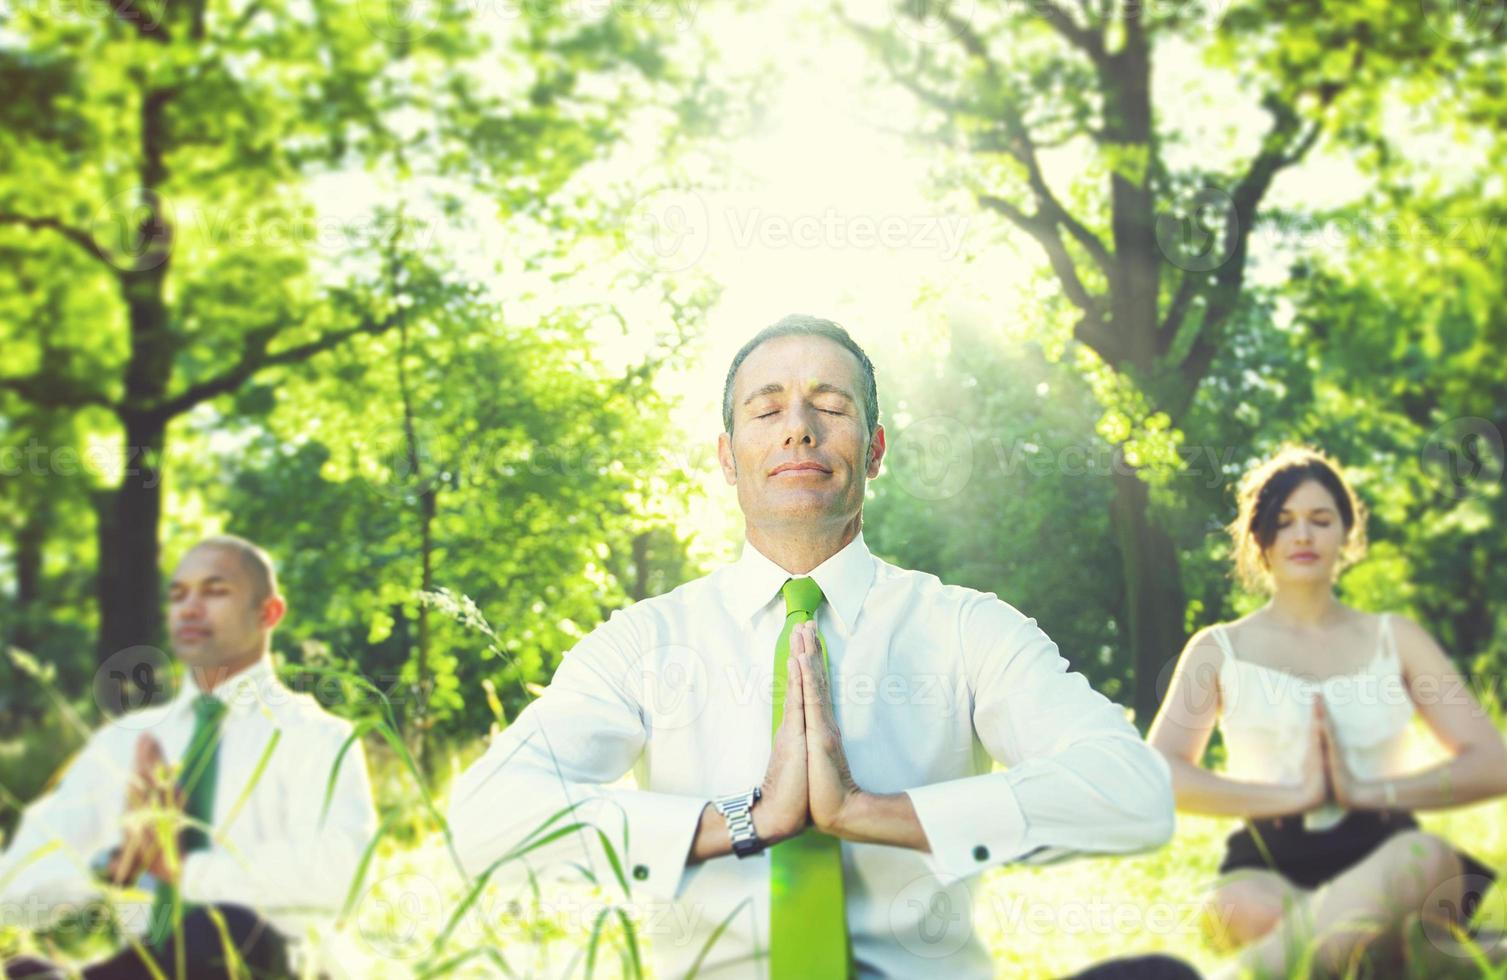 Business People Meditating Nature Relaxation Concept photo